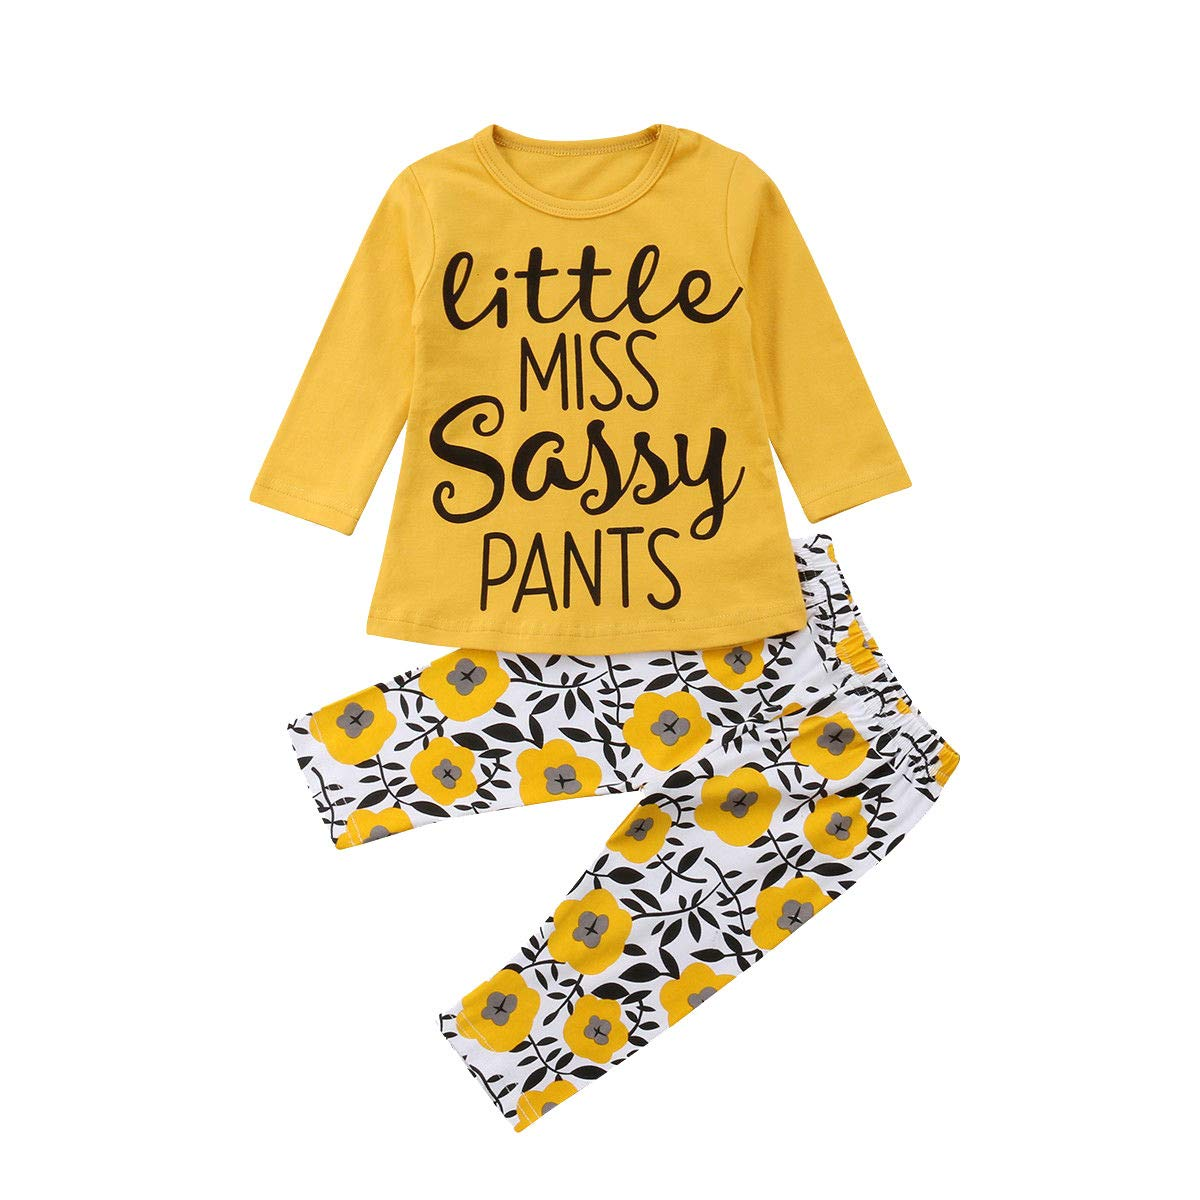 Zerototens Kids Clothing Set, 0-3 Years Old Toddler Kids Clothes Boys Girls Long Sleeve Yellow Print Letter T-Shirt Tops +Pants 2Pcs Children Outfit Set Autumn Winter Child Tracksuit